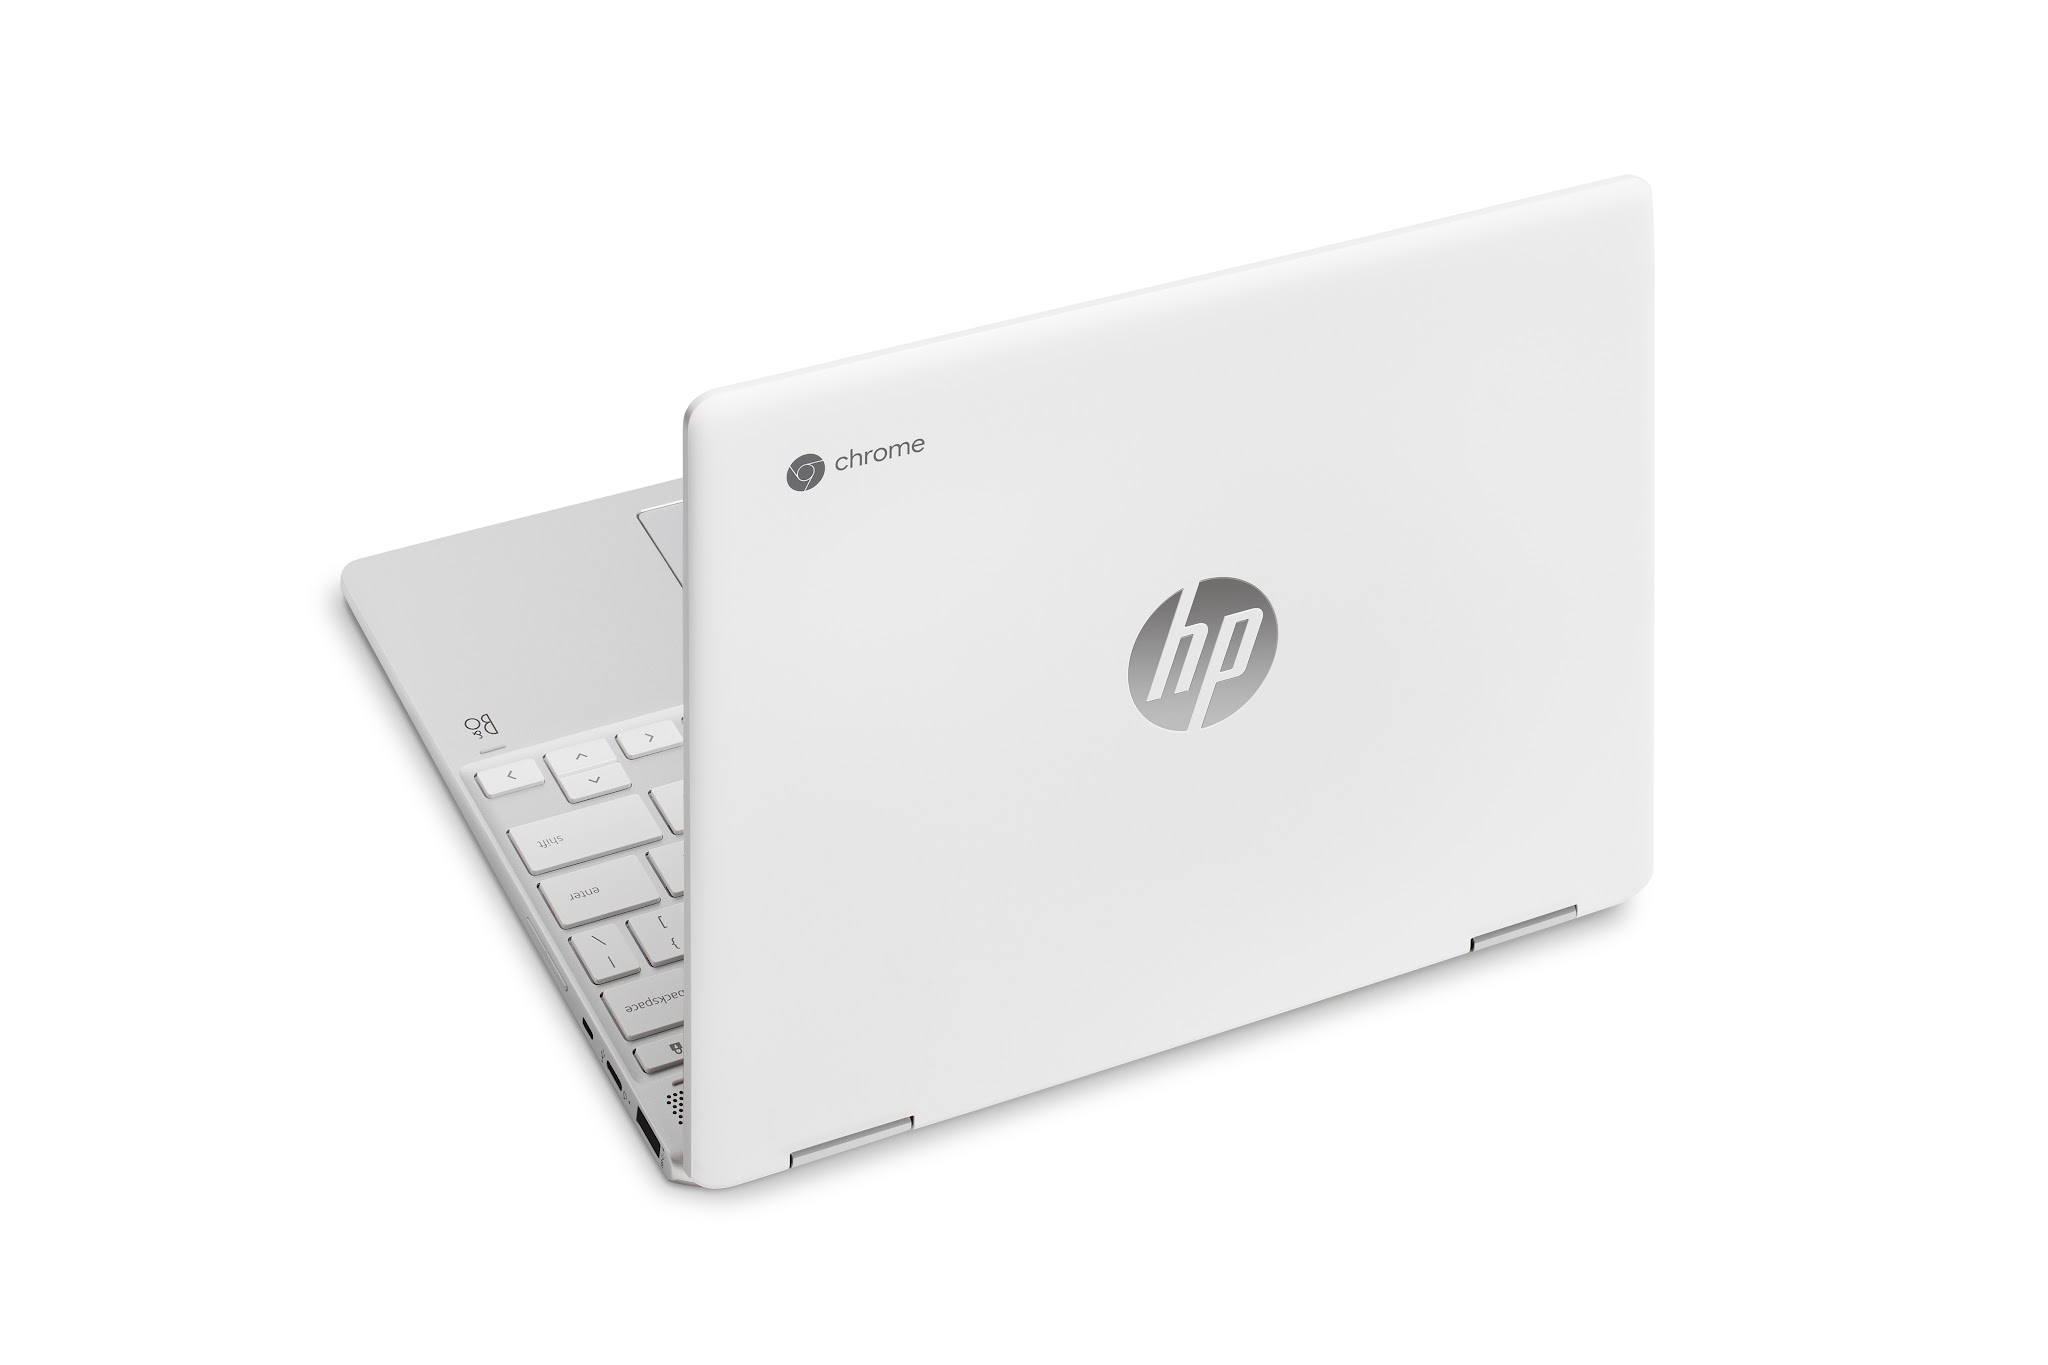 HP Chromebook x360 12b - photo 13